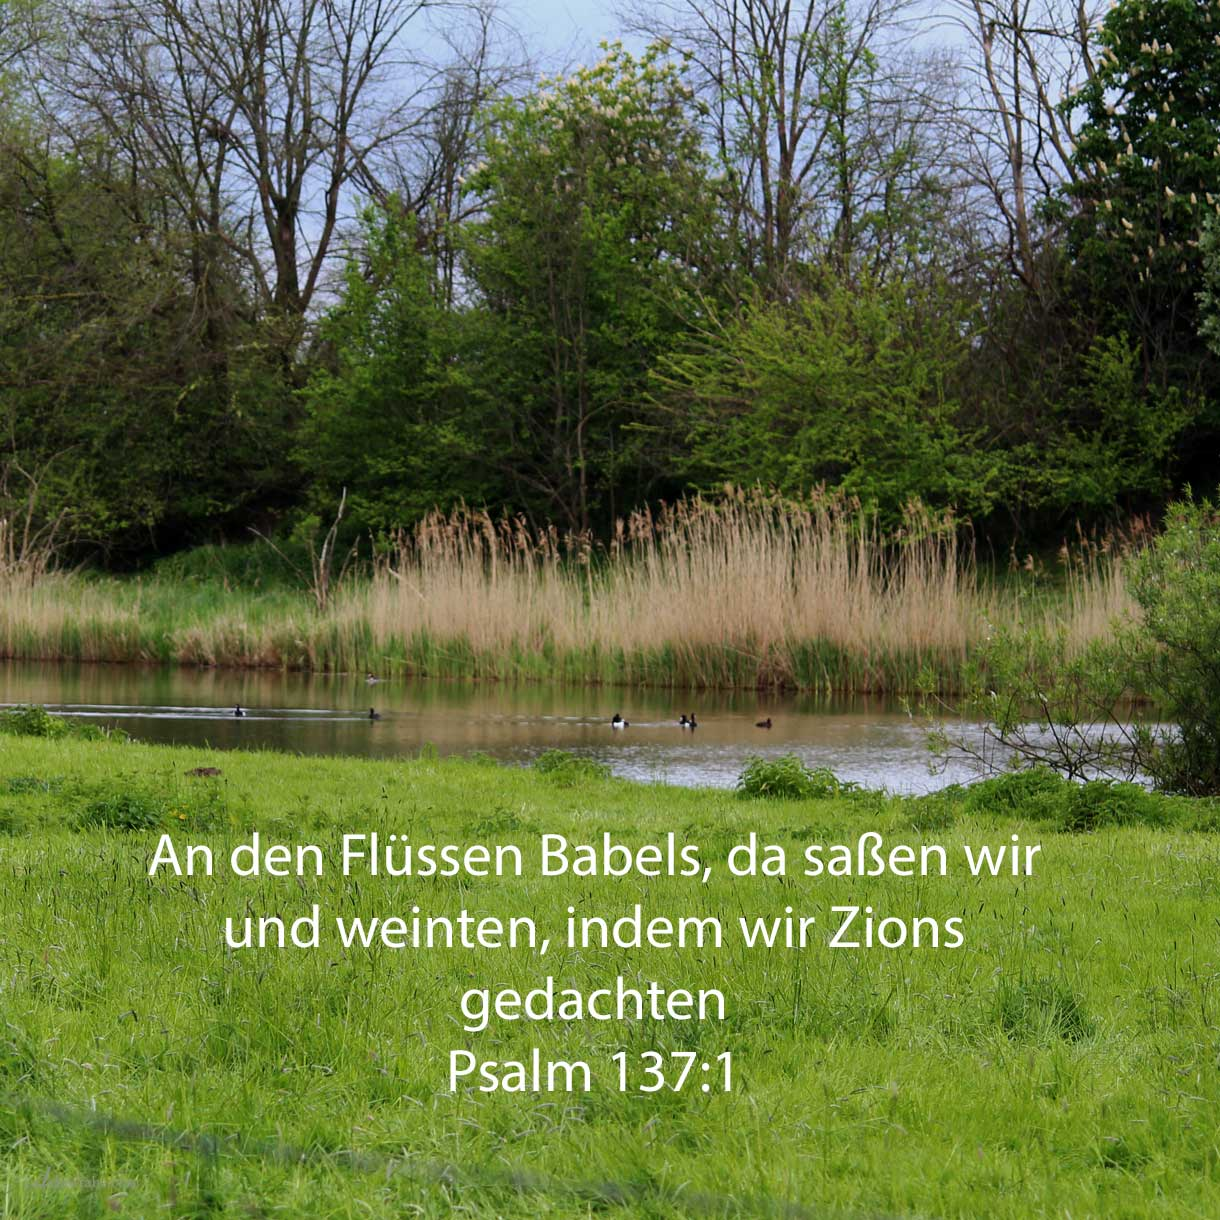 By the rivers of Babylon, there we sat down, yea, we wept, when we remembered Zion ( psalms 137:1 )